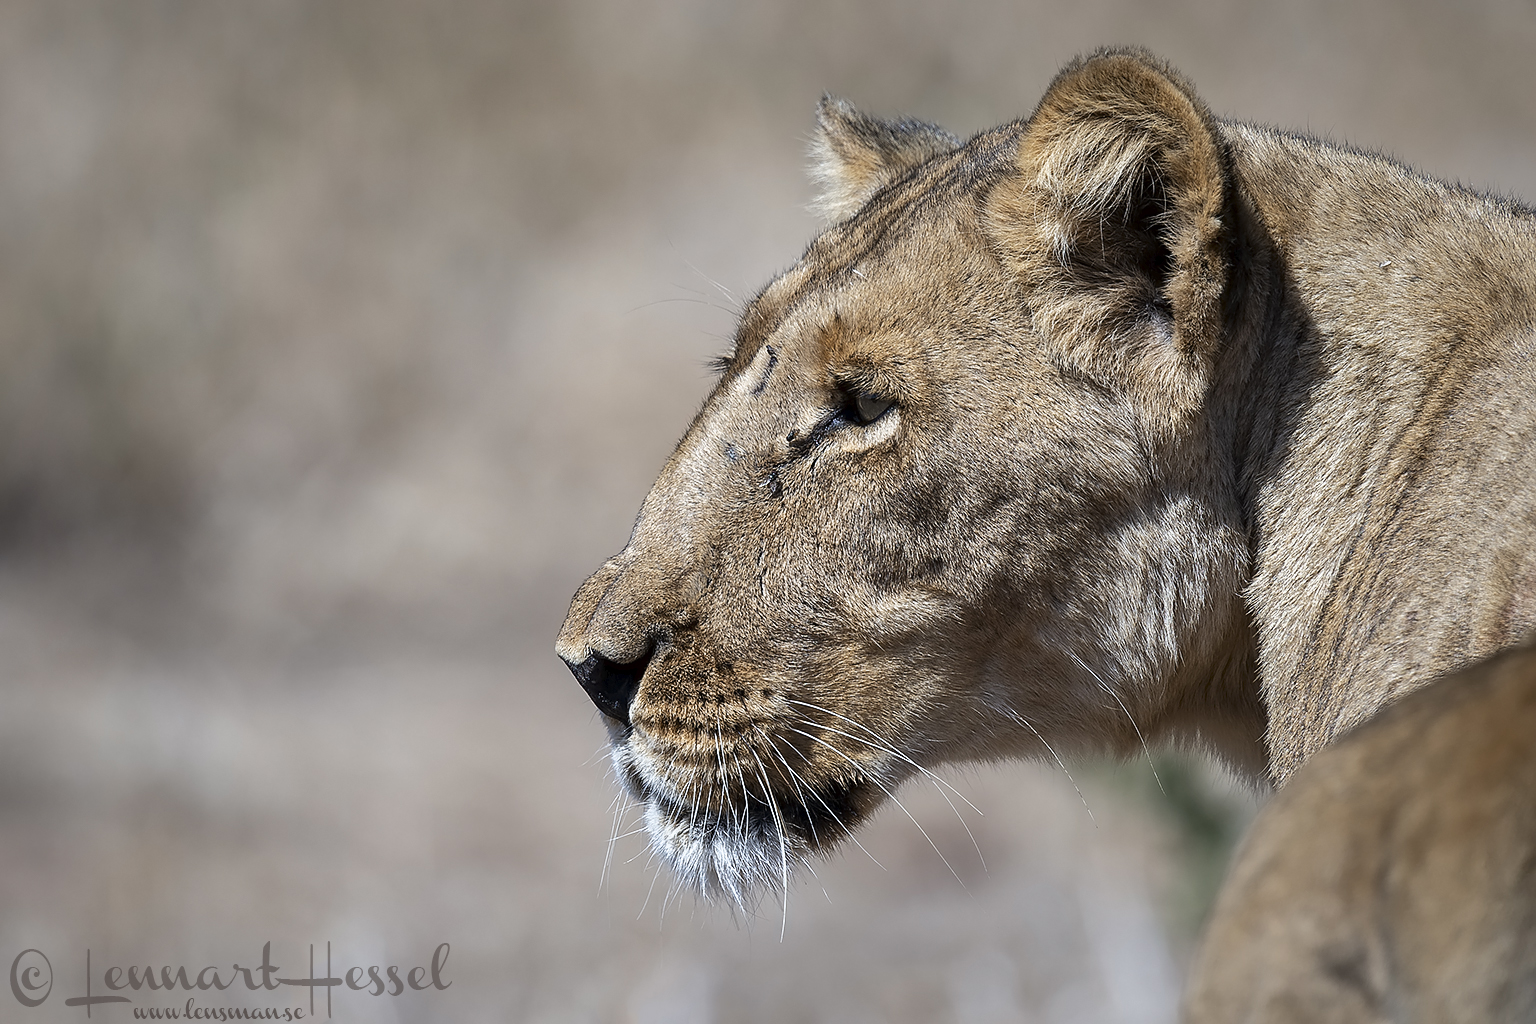 Lioness Mana Pools National Park Zimbabwe